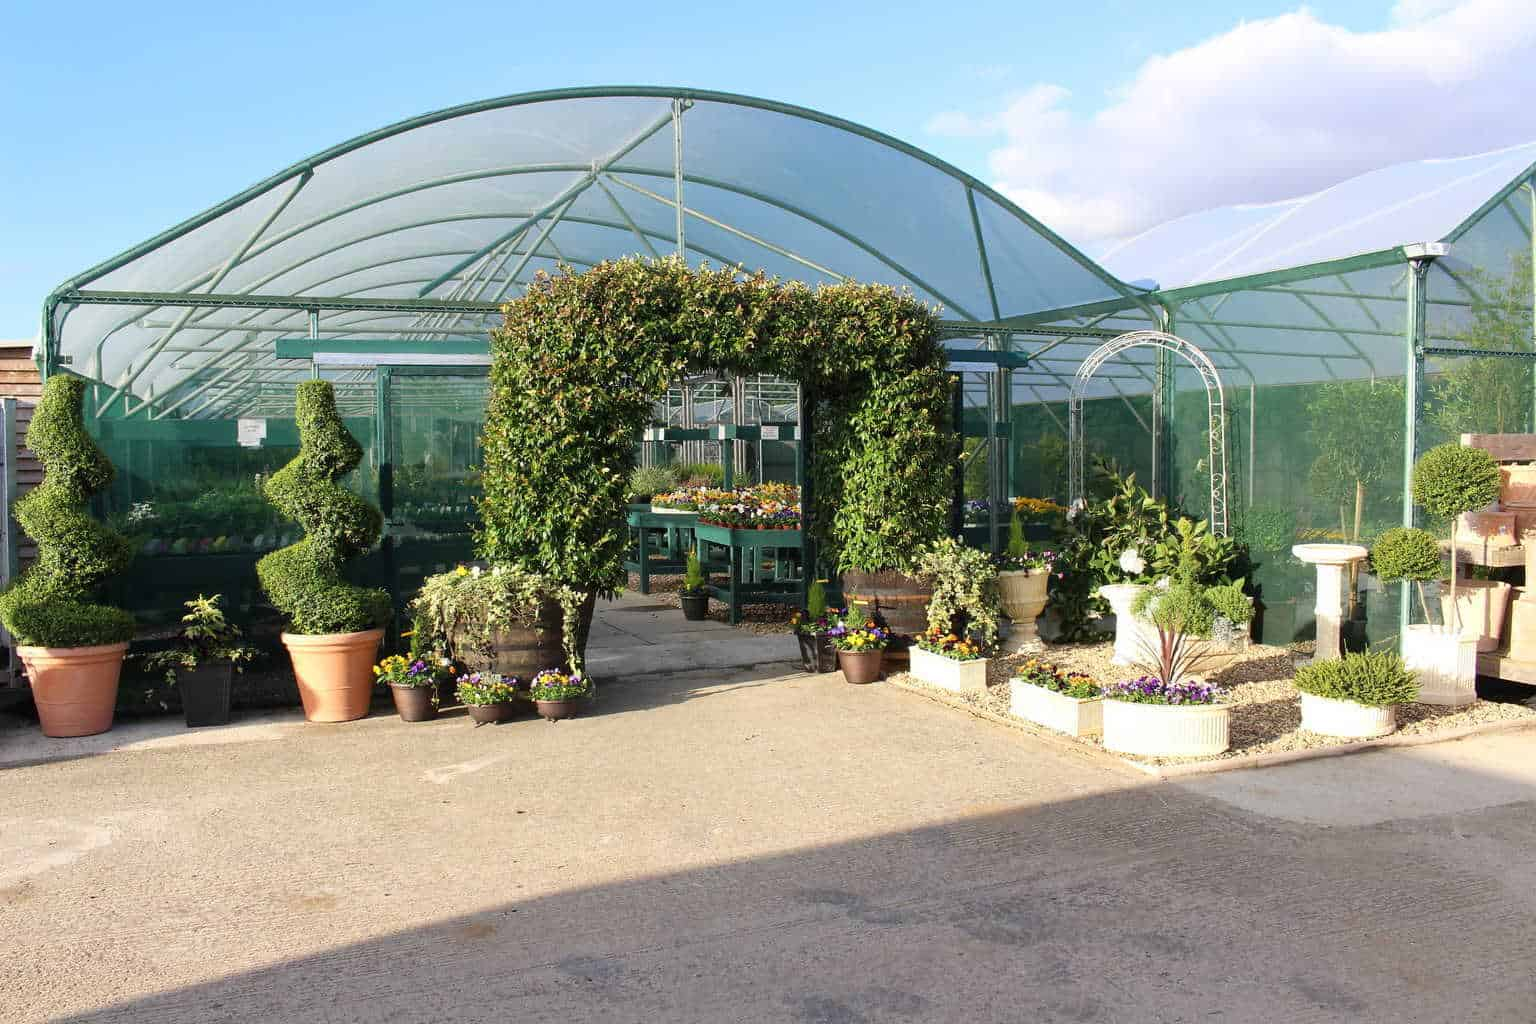 Jasmine arch at the Hardy Centre, Woolpit Nurseries